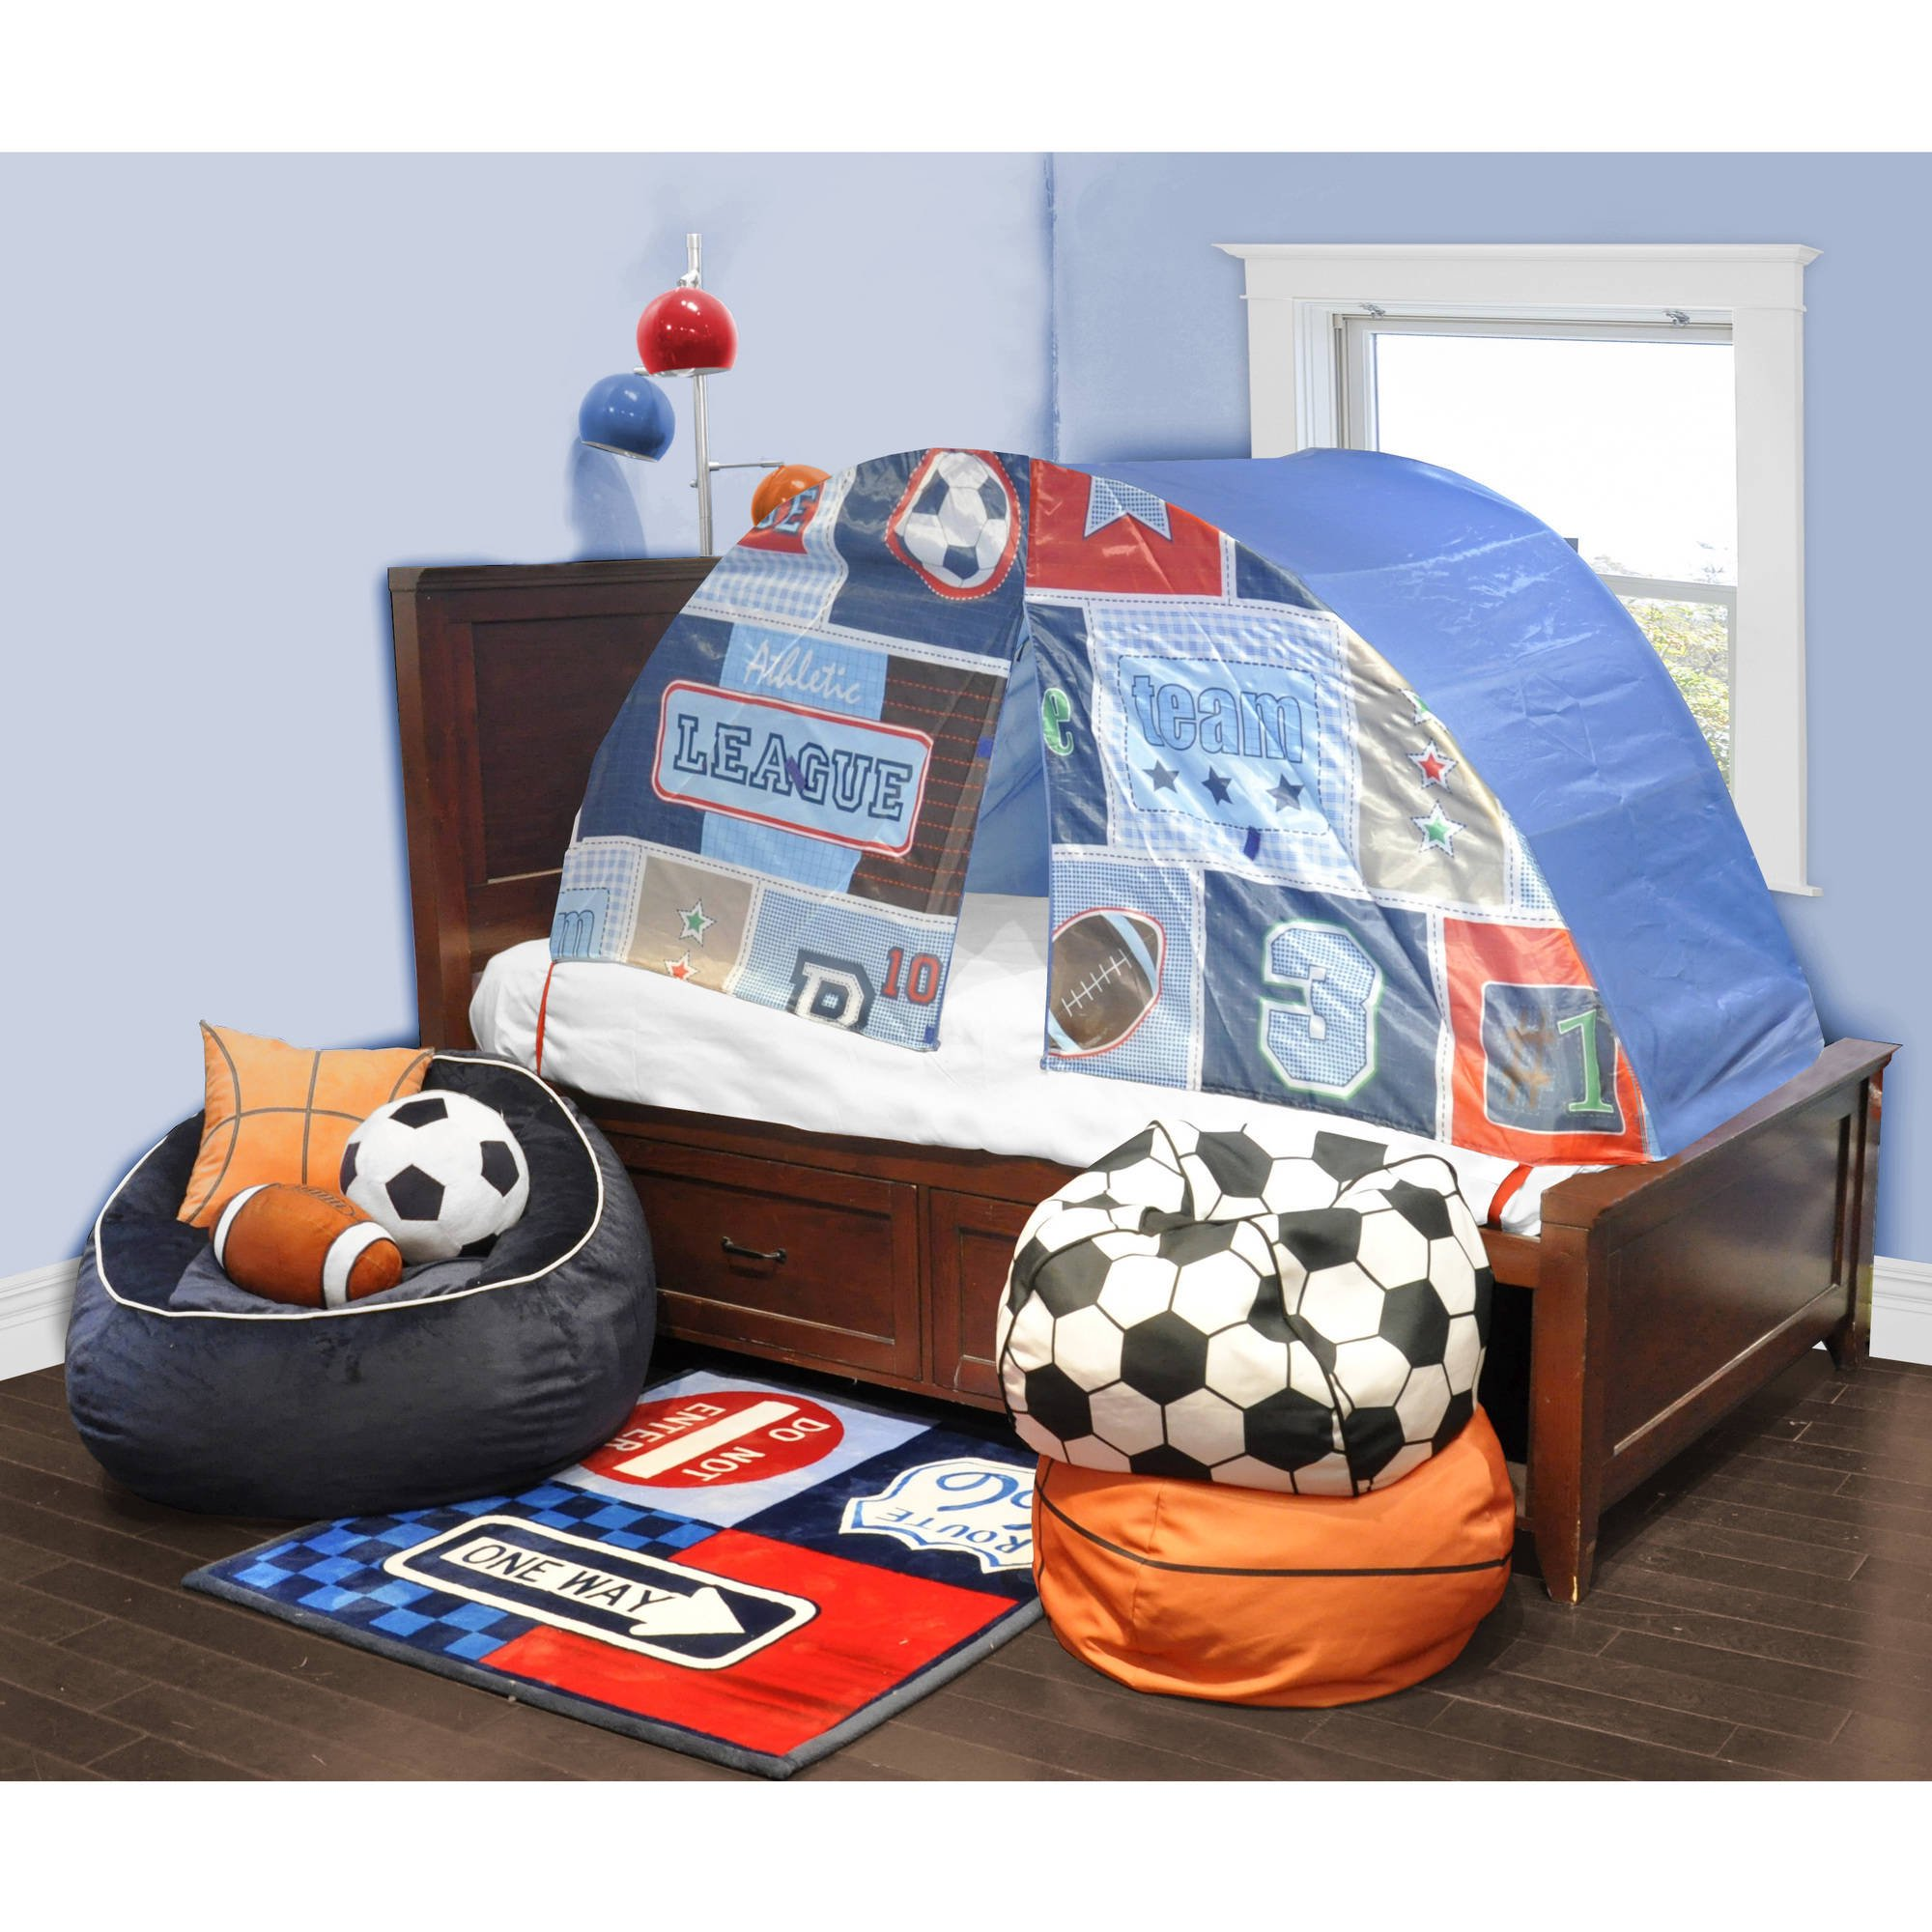 Kids Scene Sports Play Bed Tent  sc 1 st  Walmart : twin bed tent walmart - memphite.com